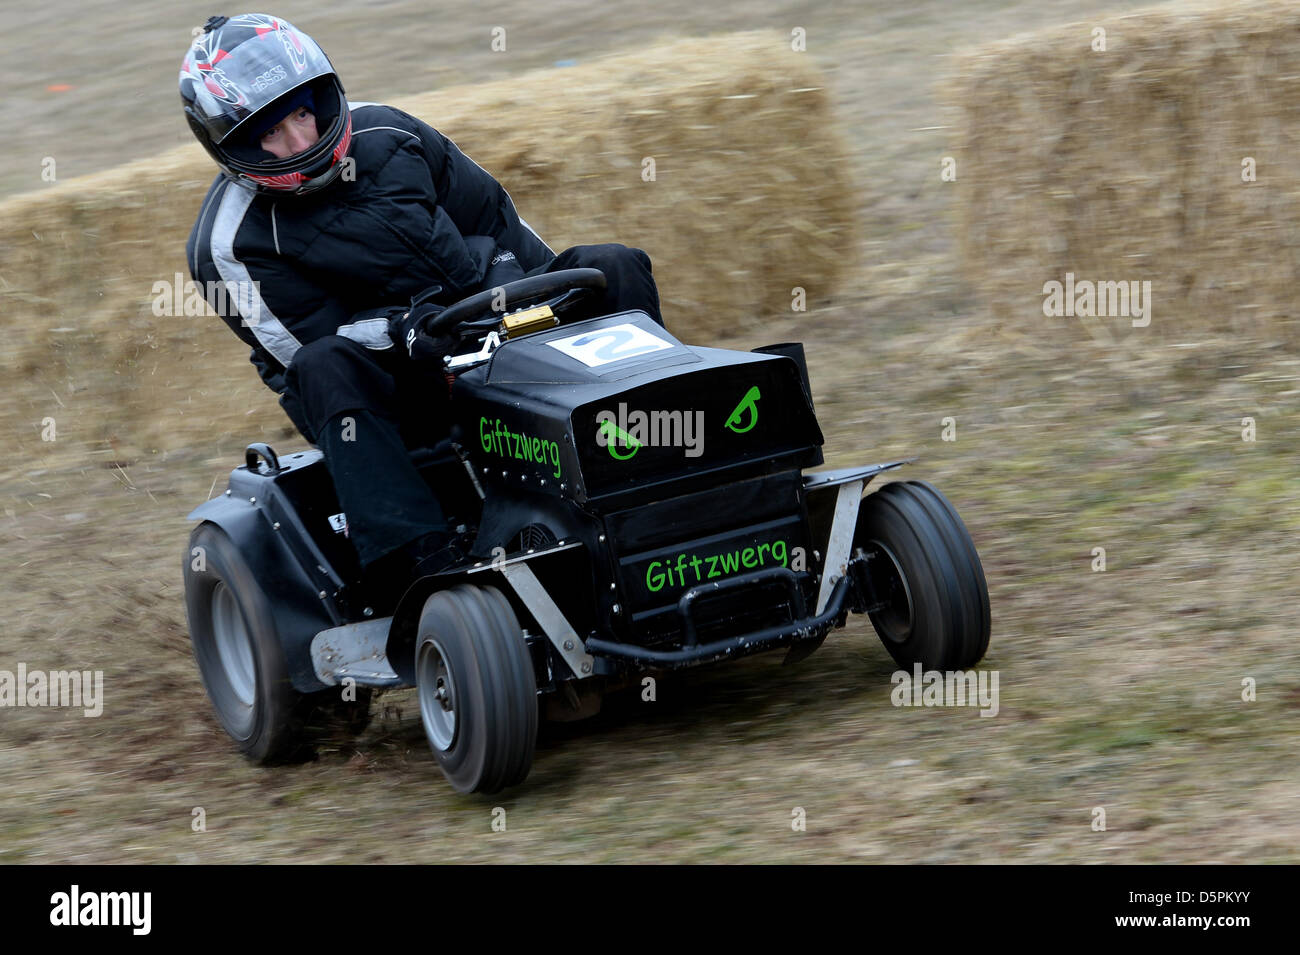 Racing Lawn Mowers For Sale >> Lawn Tractor Stock Photos & Lawn Tractor Stock Images - Alamy